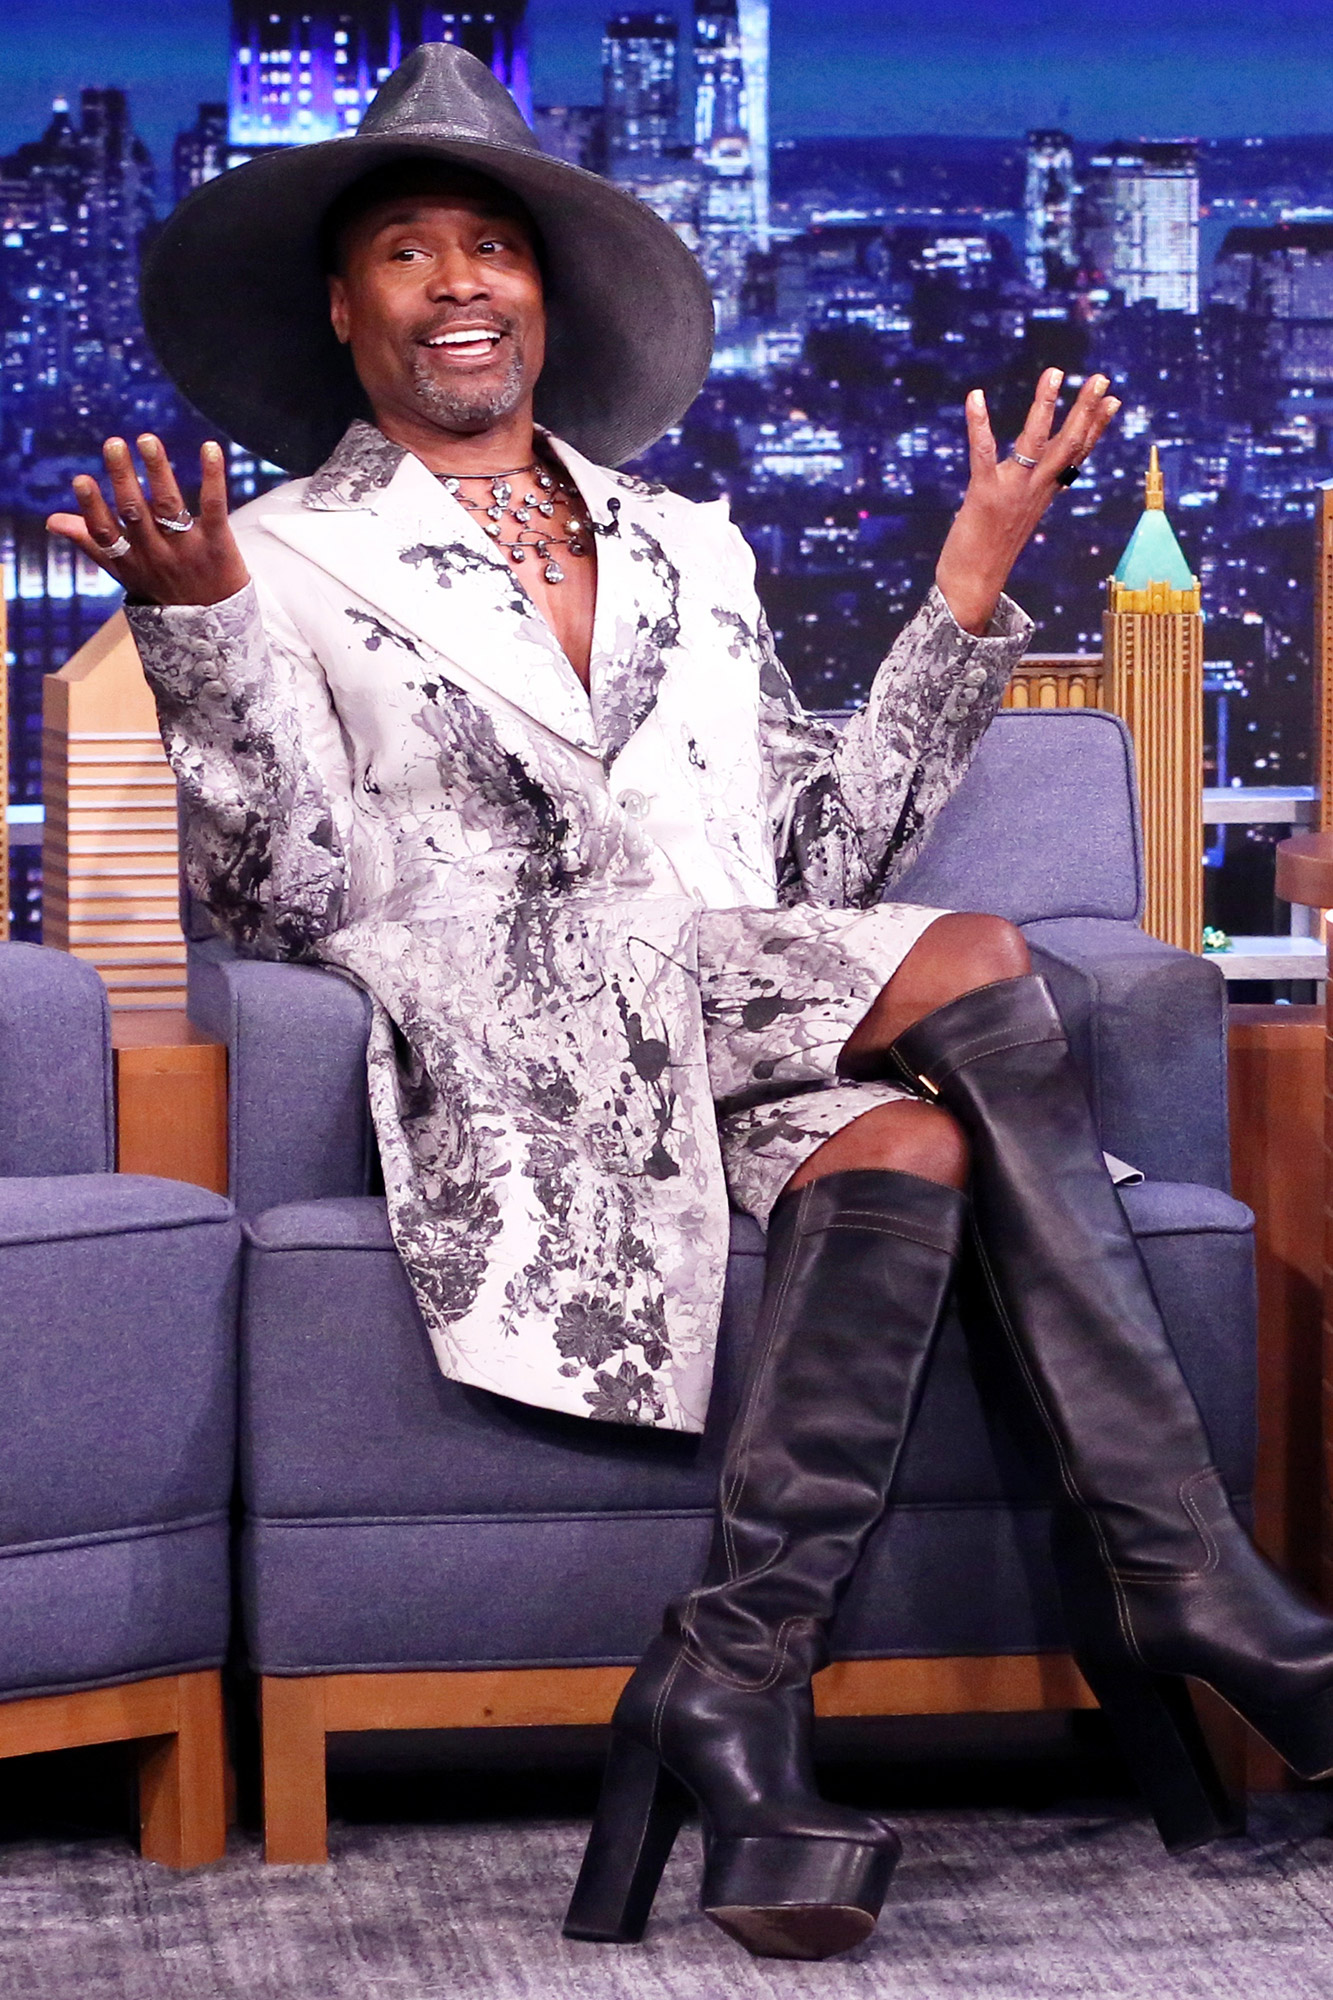 THE TONIGHT SHOW STARRING JIMMY FALLON -- Episode 1472 -- Pictured: Actor Billy Porter during an interview on Thursday, May 27, 2021